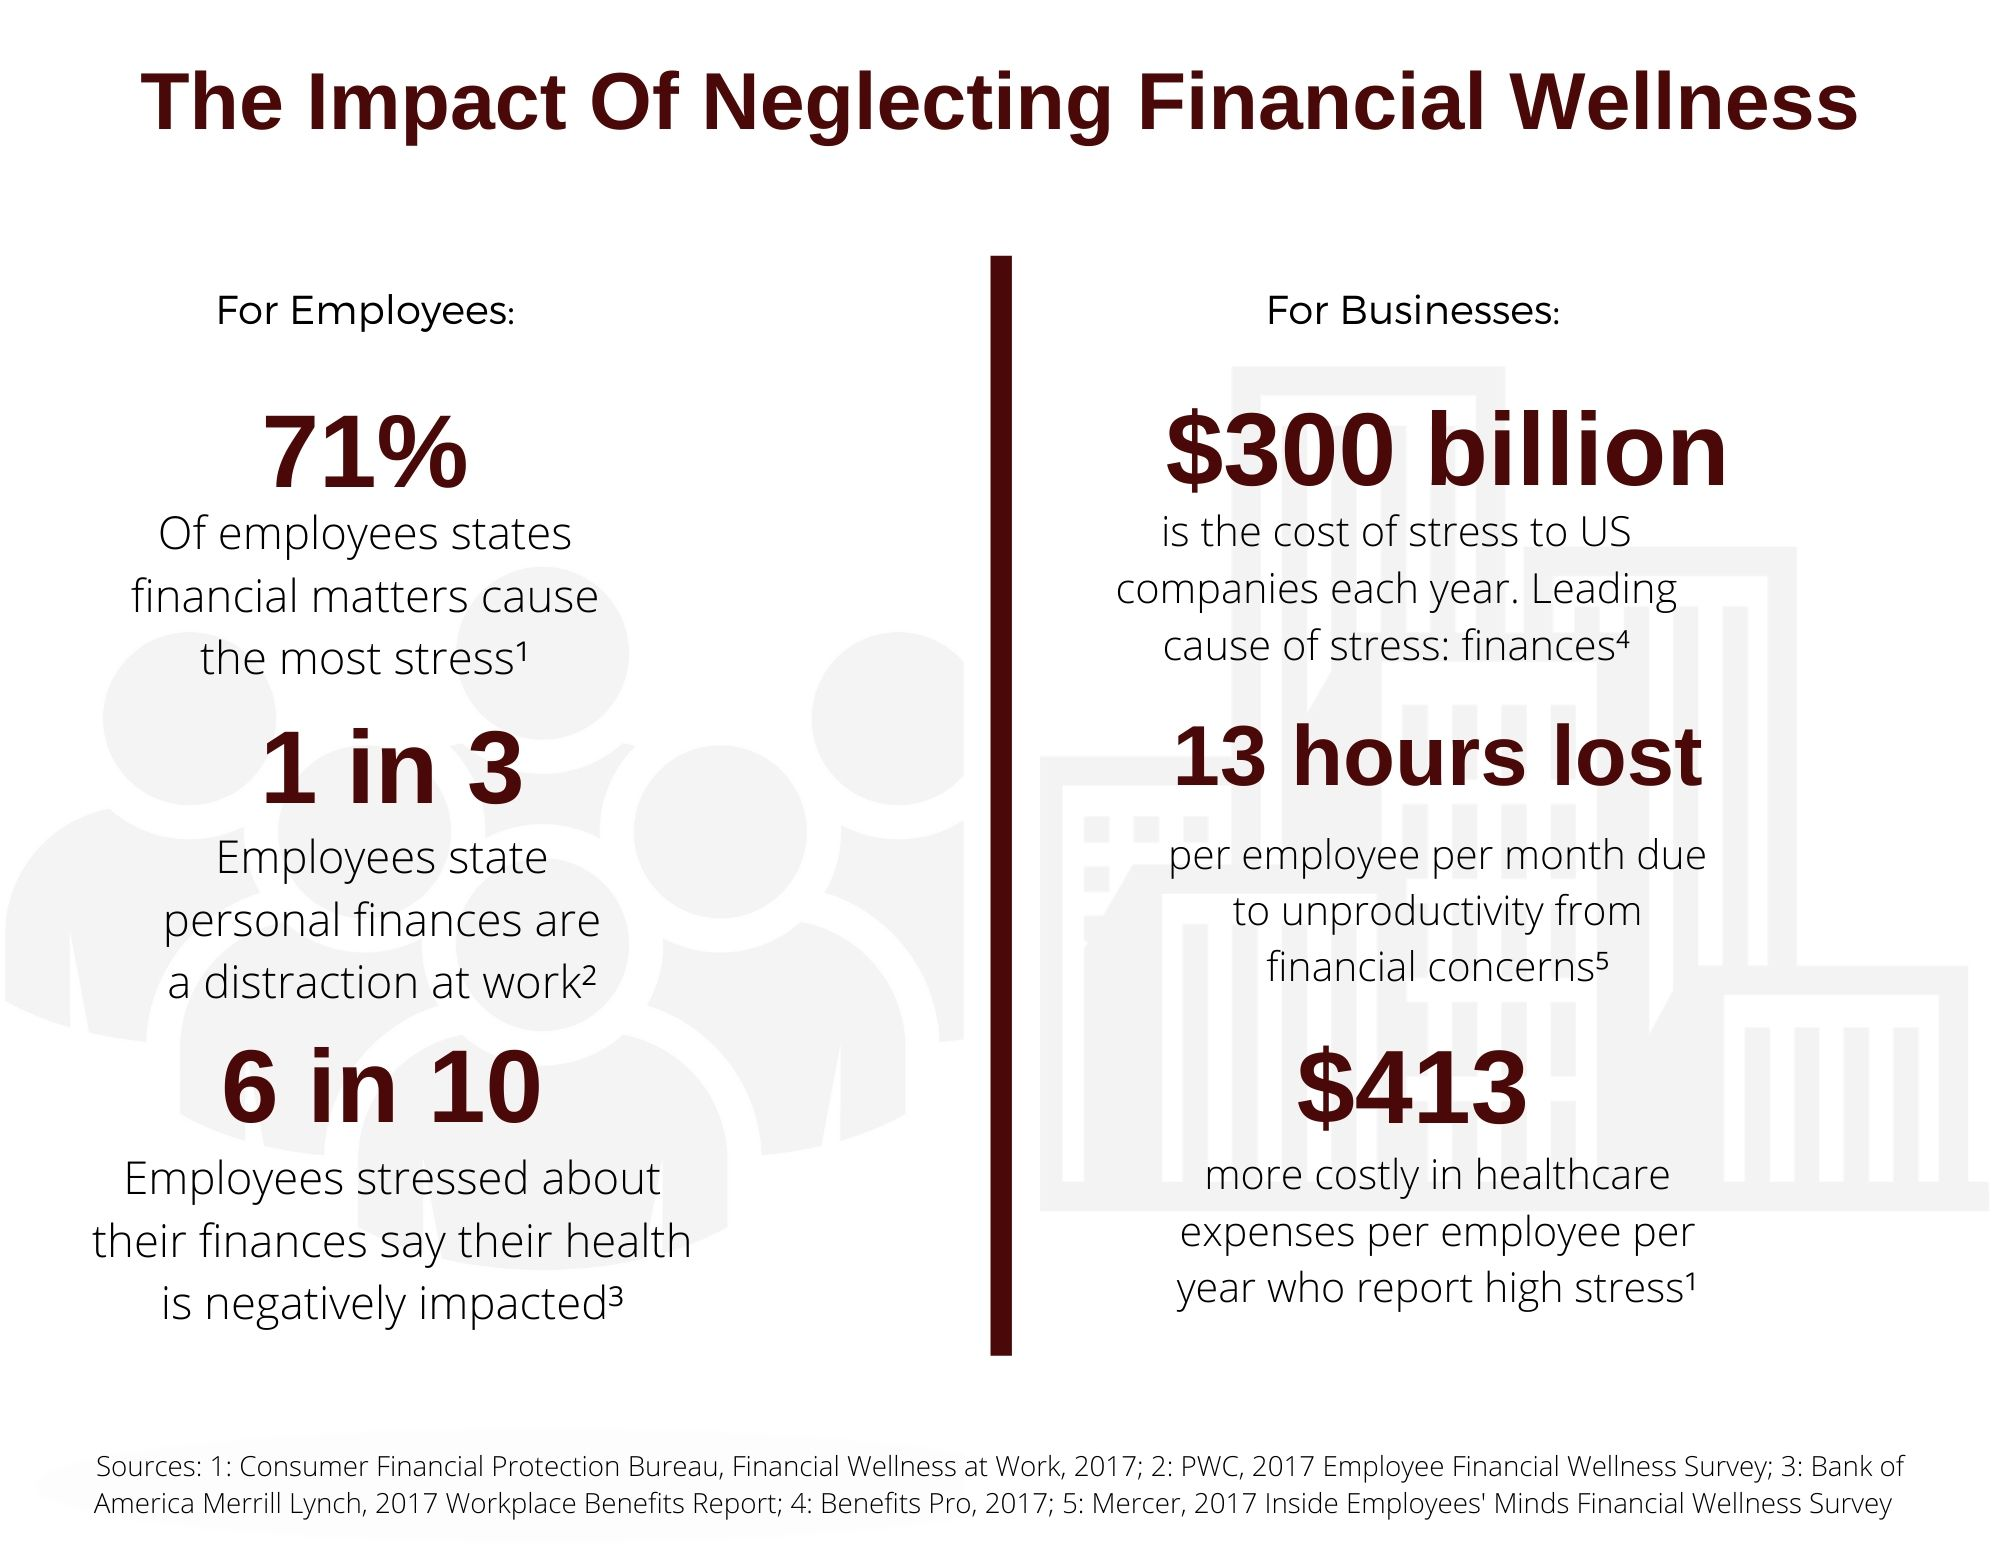 The impact of neglecting financial wellness. For employees: 71% of employee states financial matters cause the most stress1. 1 in 3 employees state personal finances are a distraction at work2. 6 in 10 employees stressed about their finances say their health is negatively impacted3. For Businesses: $300 billion is the cost of stress to US companies each year. Leading cause of stress: finances4. 13 hours lost per employee per month due to unproductivity from financial concerns5. $413 more costly in healthcare expenses per employee per year who report high stress1 Sources: 1: Consumer Fianncial Protection Bureau, Financial Welnnes at Work, 2017; 2: PWC, 2017 Employee Financial Wellness Survey; 3: Bank of America Merrill Lynch, 2017 Workplace Benefits Report; 4: Benefits Pro, 2017; 5: Mercer, 2017 Inside Employees' Minds Financial Wellness Survey